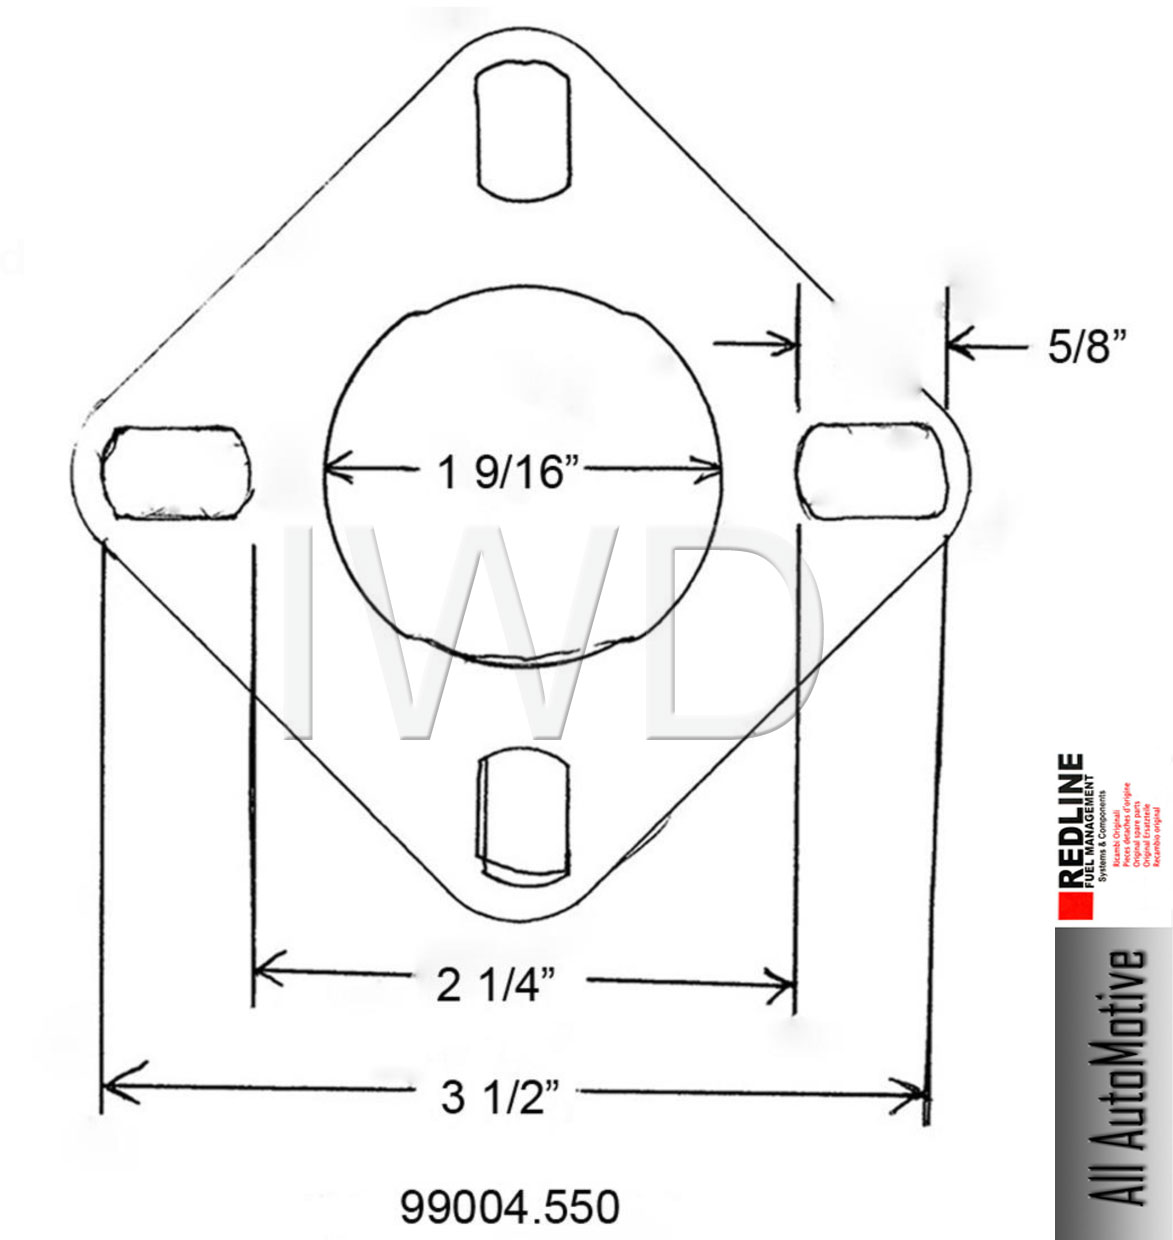 Weber Carb Adapter Plate 1bbl Stock Carb To 2bbl Weber 32 36 See Detailed Info